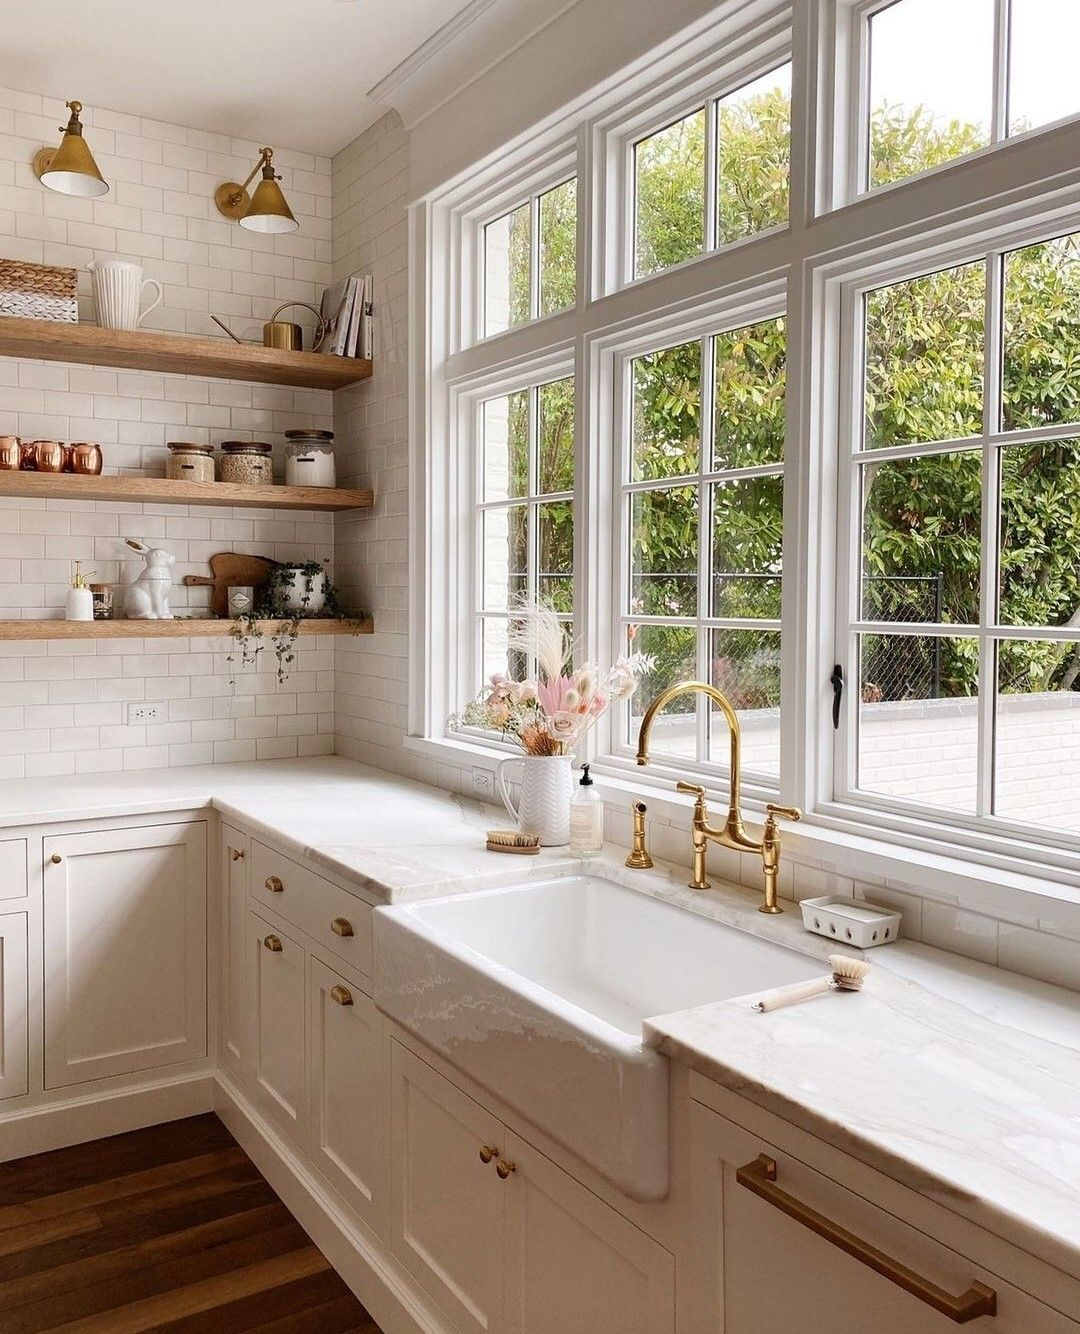 """Scout & Nimble on Instagram: """"This! Kitchen! 😍 We cannot get enough of the details in this gorgeous French Colonial revival kitchen from @jennymartindesign   What's…"""""""